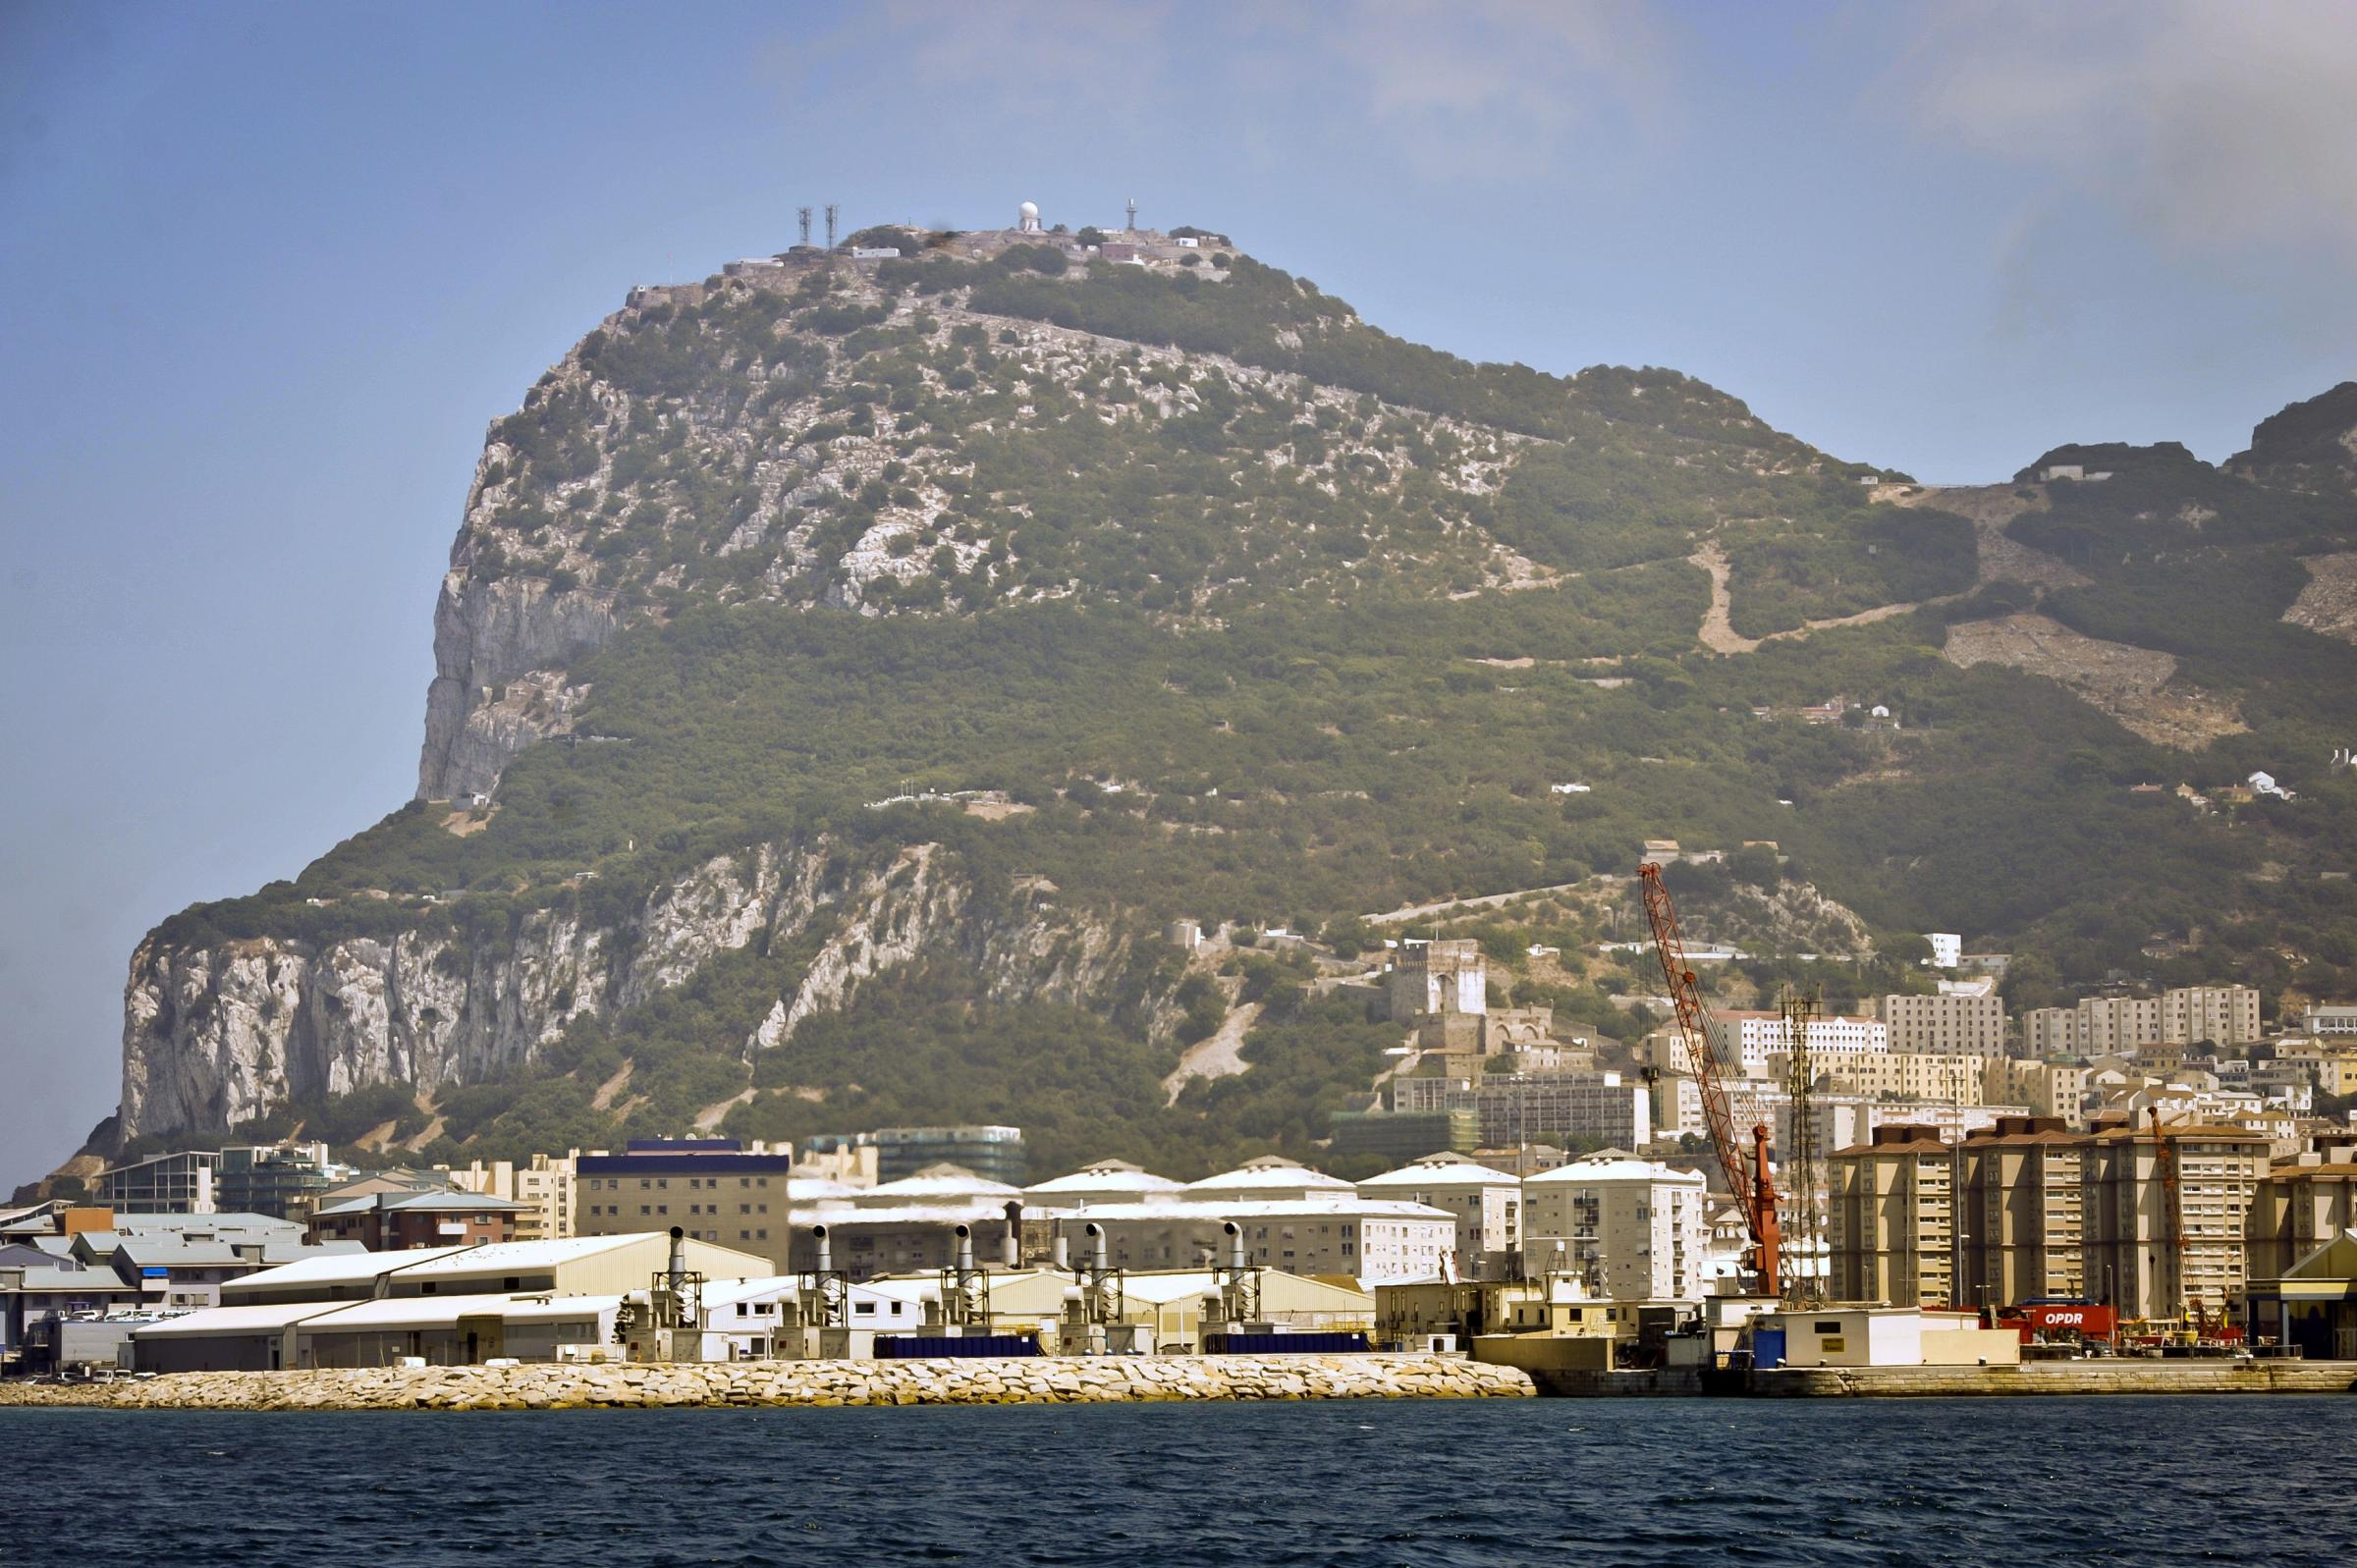 Decisions involving countries such as Gibraltar were made when the world was very different